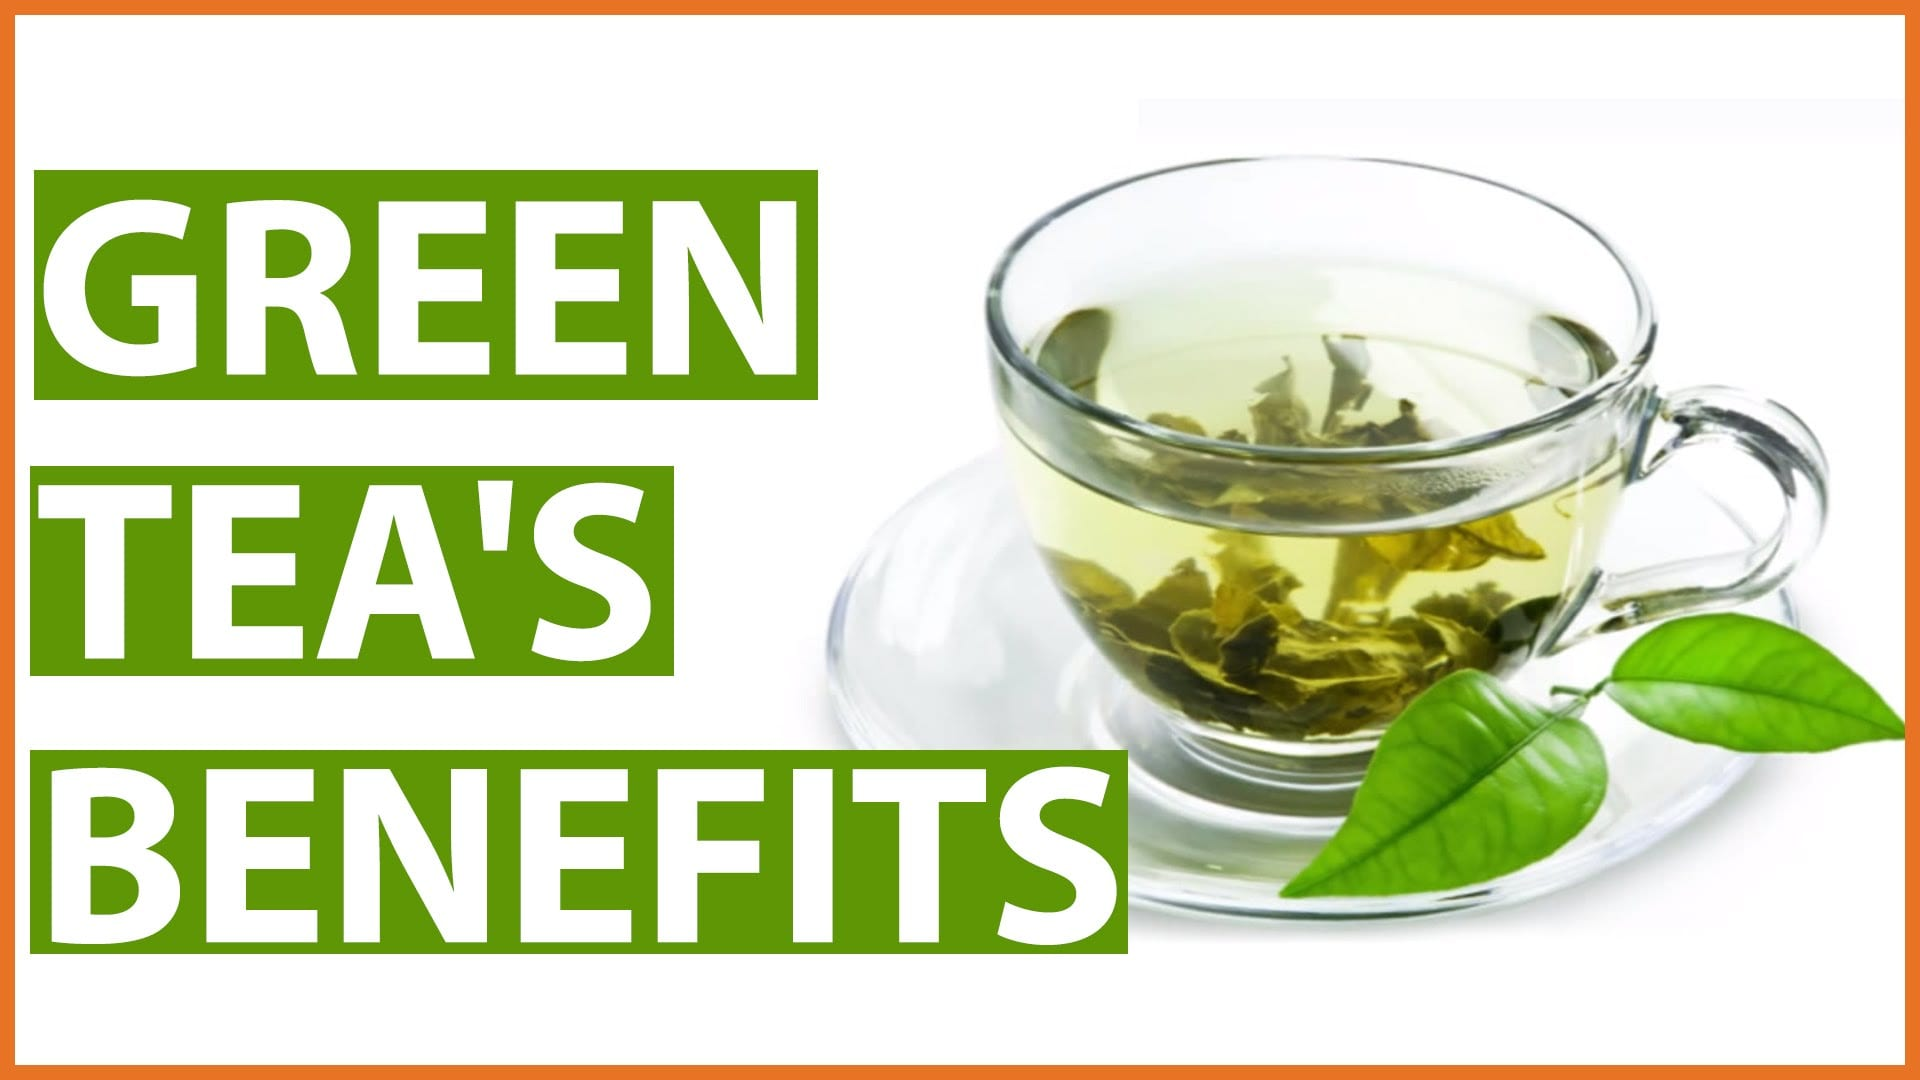 Wholesome features for Health of green tea